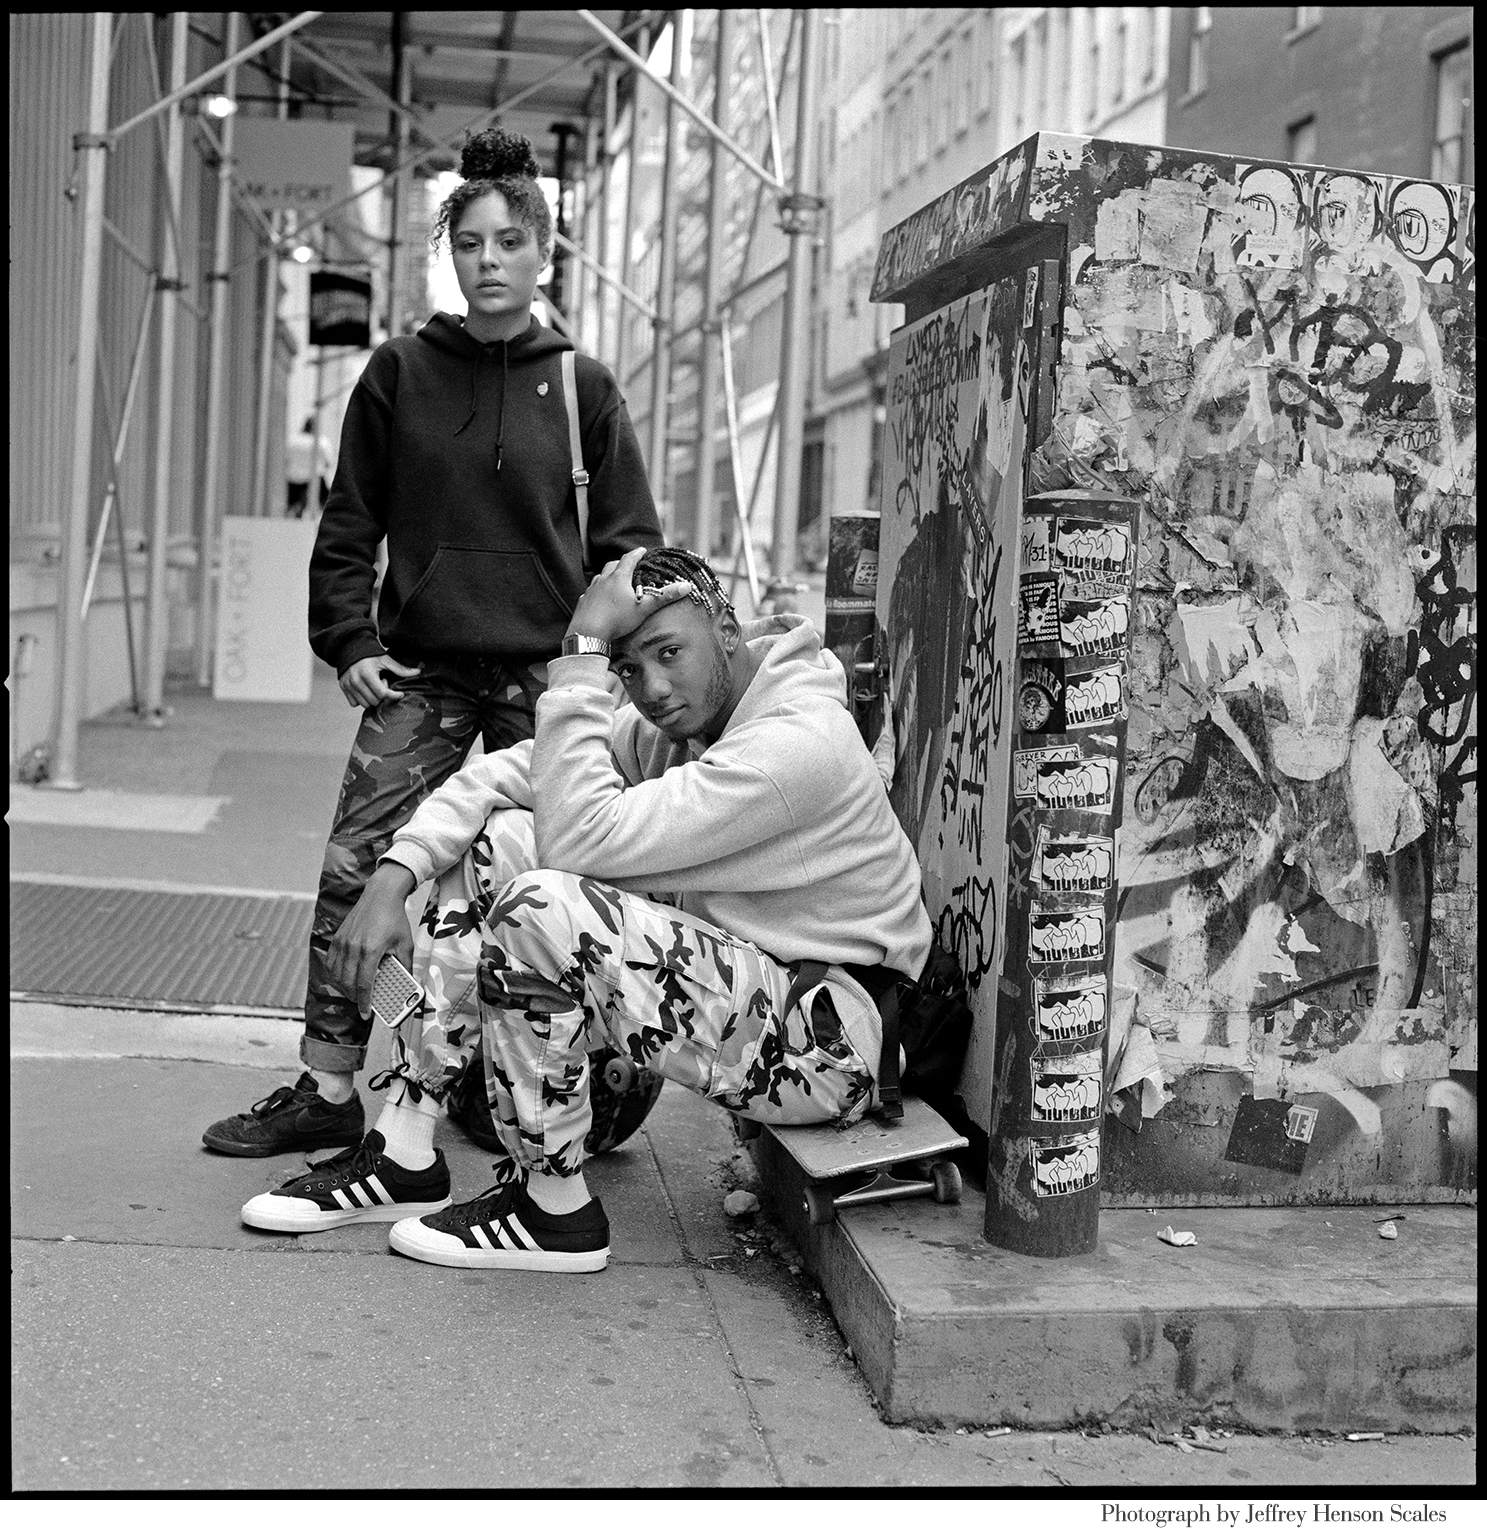 The Look _ New York Times_ Rebecca Pietri Stylist _ Casting _ Jeffery Henson Scale Photgrapher_Eve Lyon Editor_ New Geeks_Article_Nom Core- Youth Fashion_ Supreme_Palace_Vans_Street fashion _ Soho_ Teens_Skater Couple _Shot .JPG